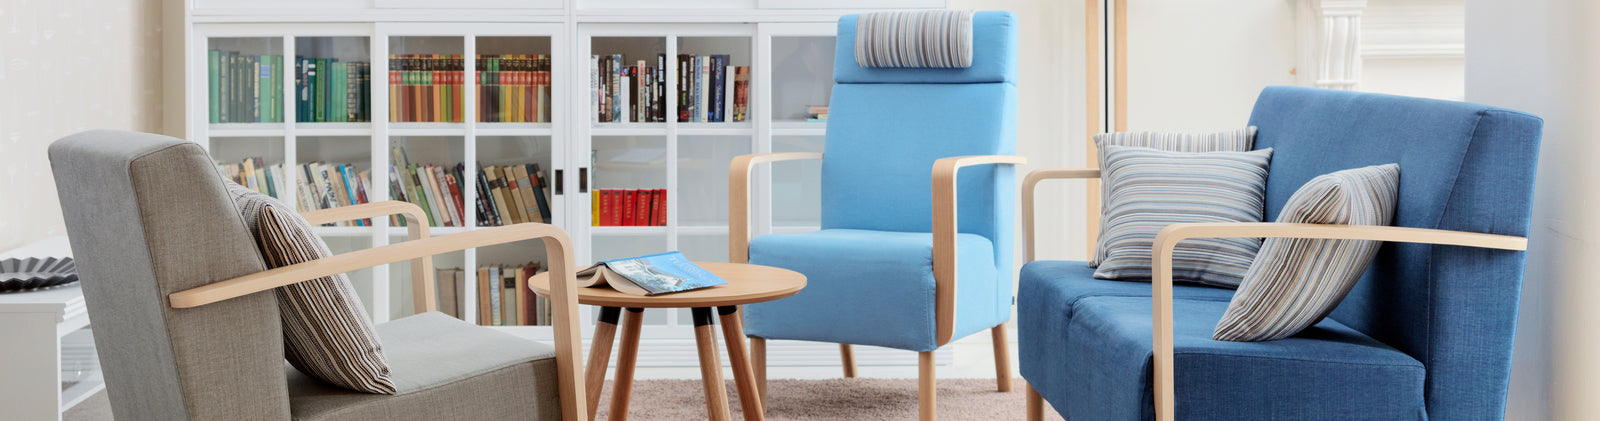 Martela Plus+ Easy Chair Soft Lounge Seating